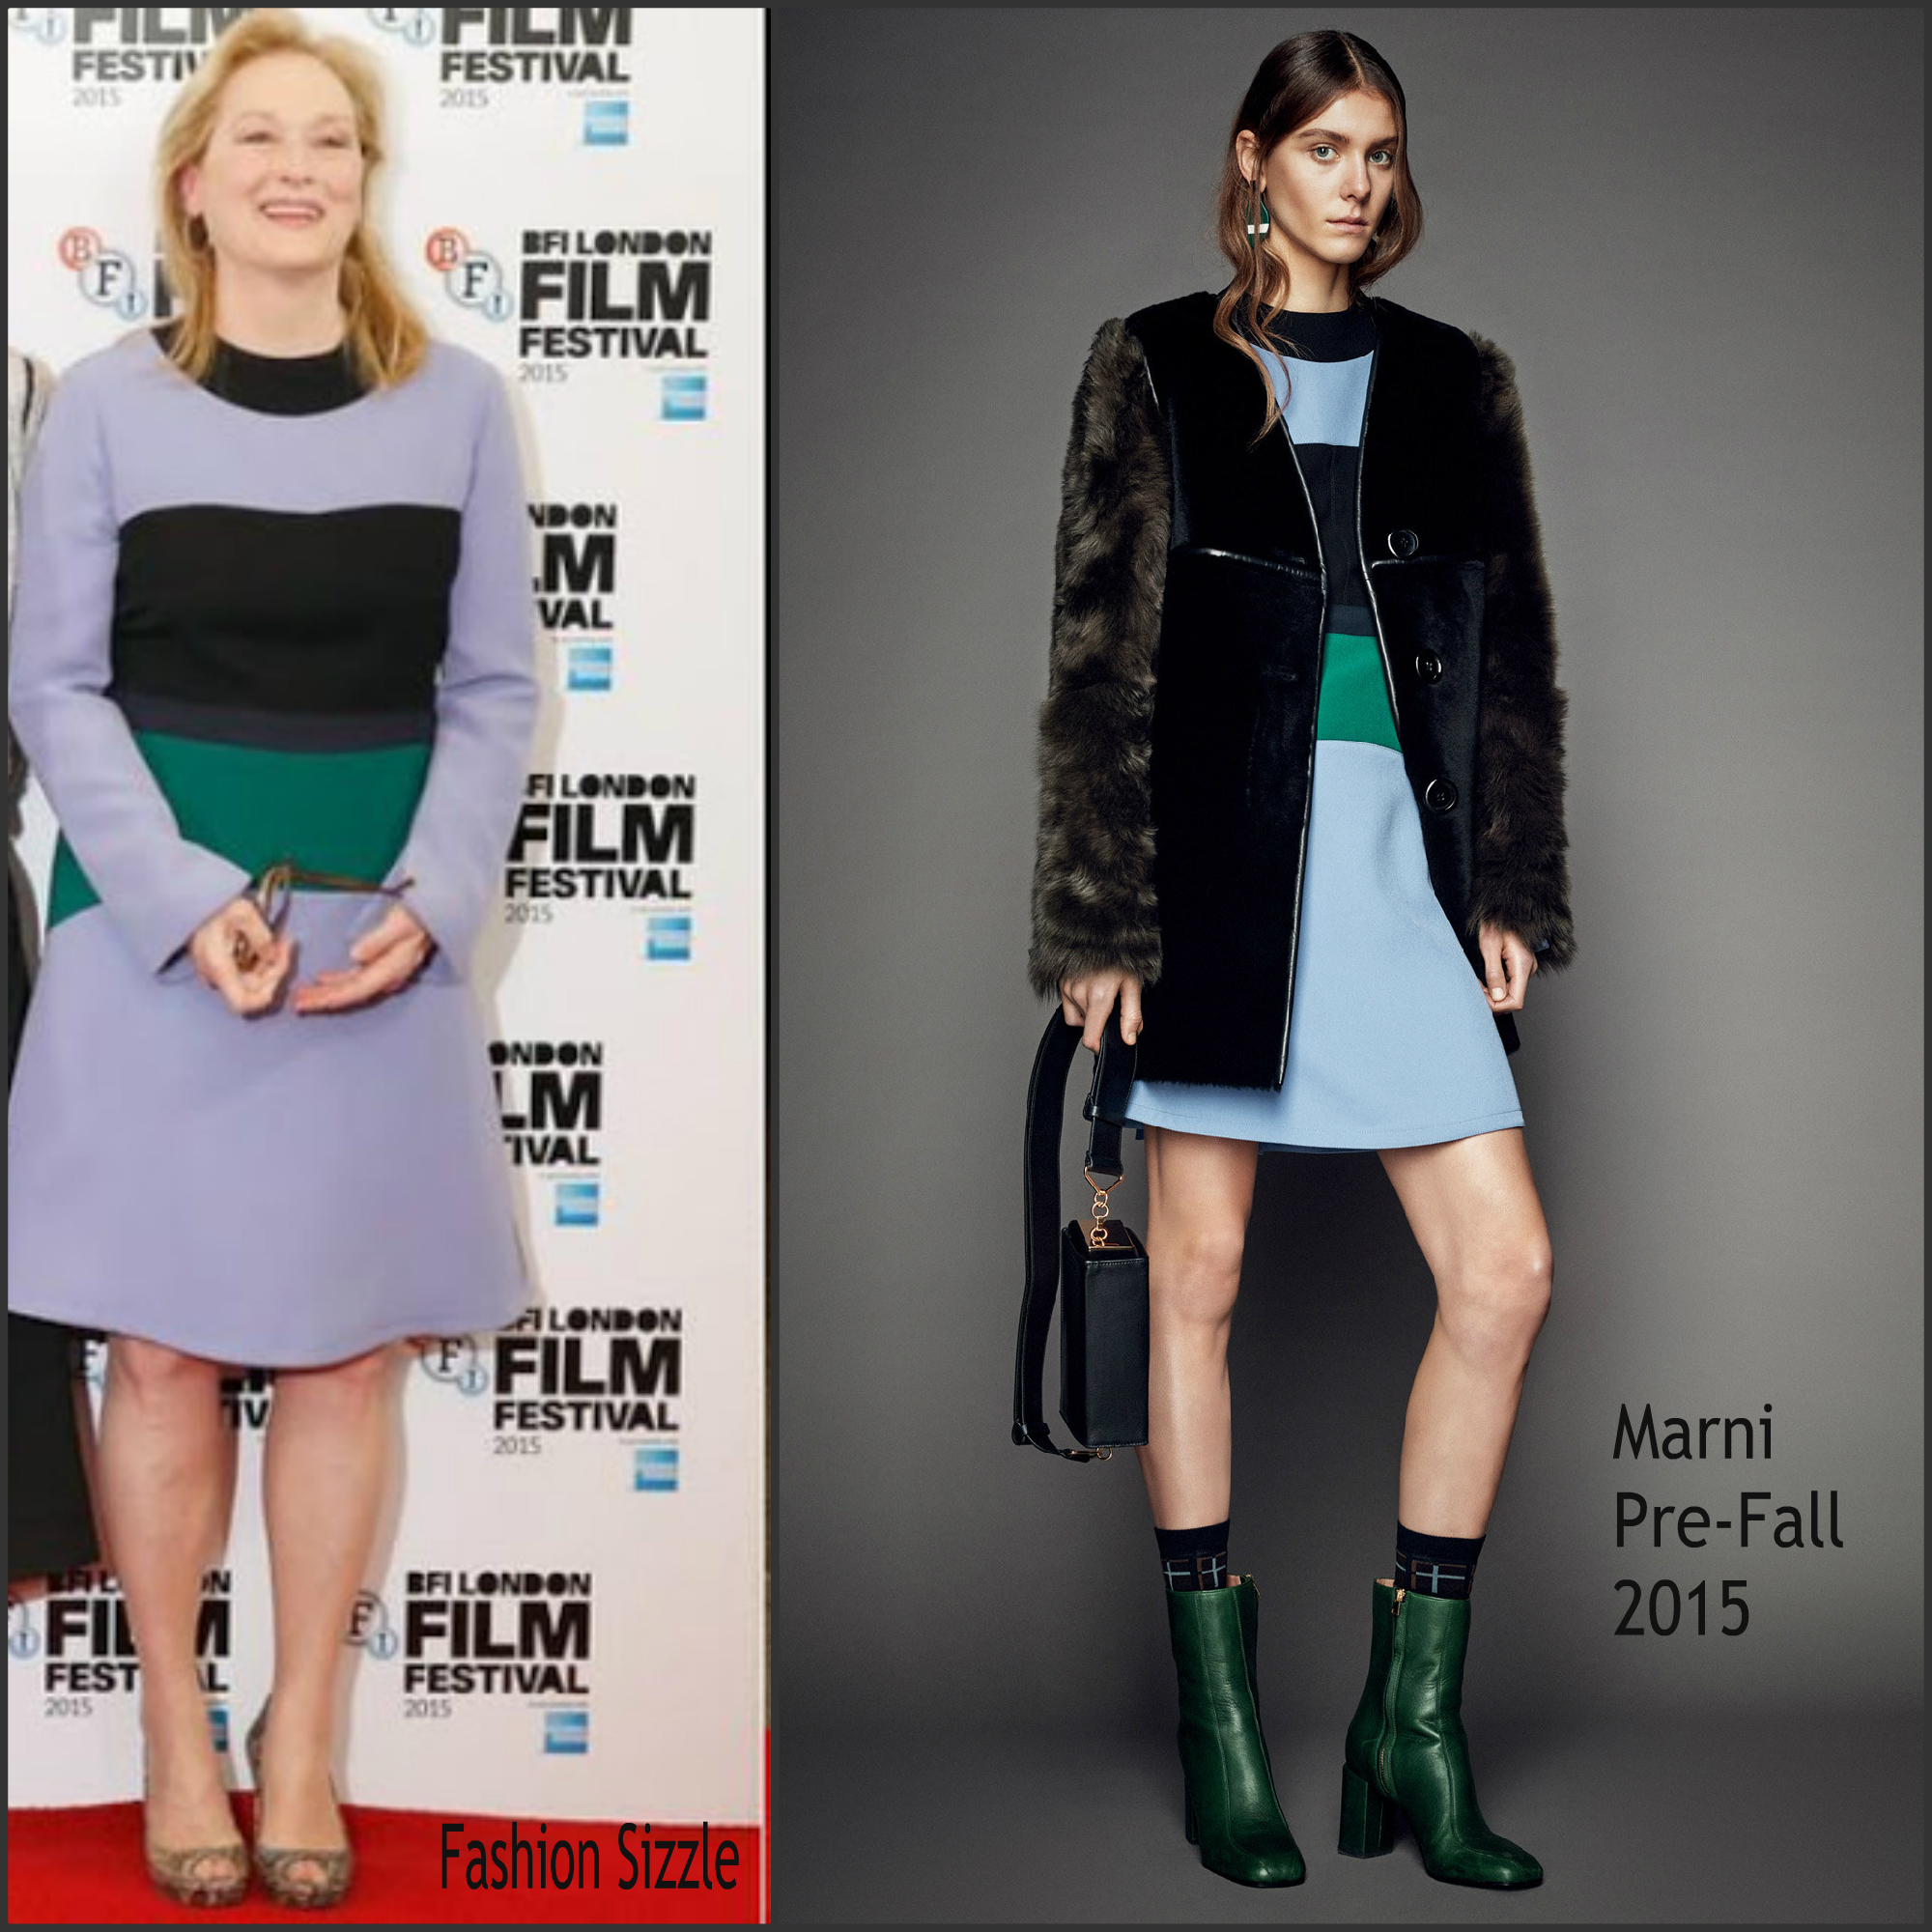 meryl-streep-in-marni-at-the-suffragette-bfi-london-film-festival-photocall